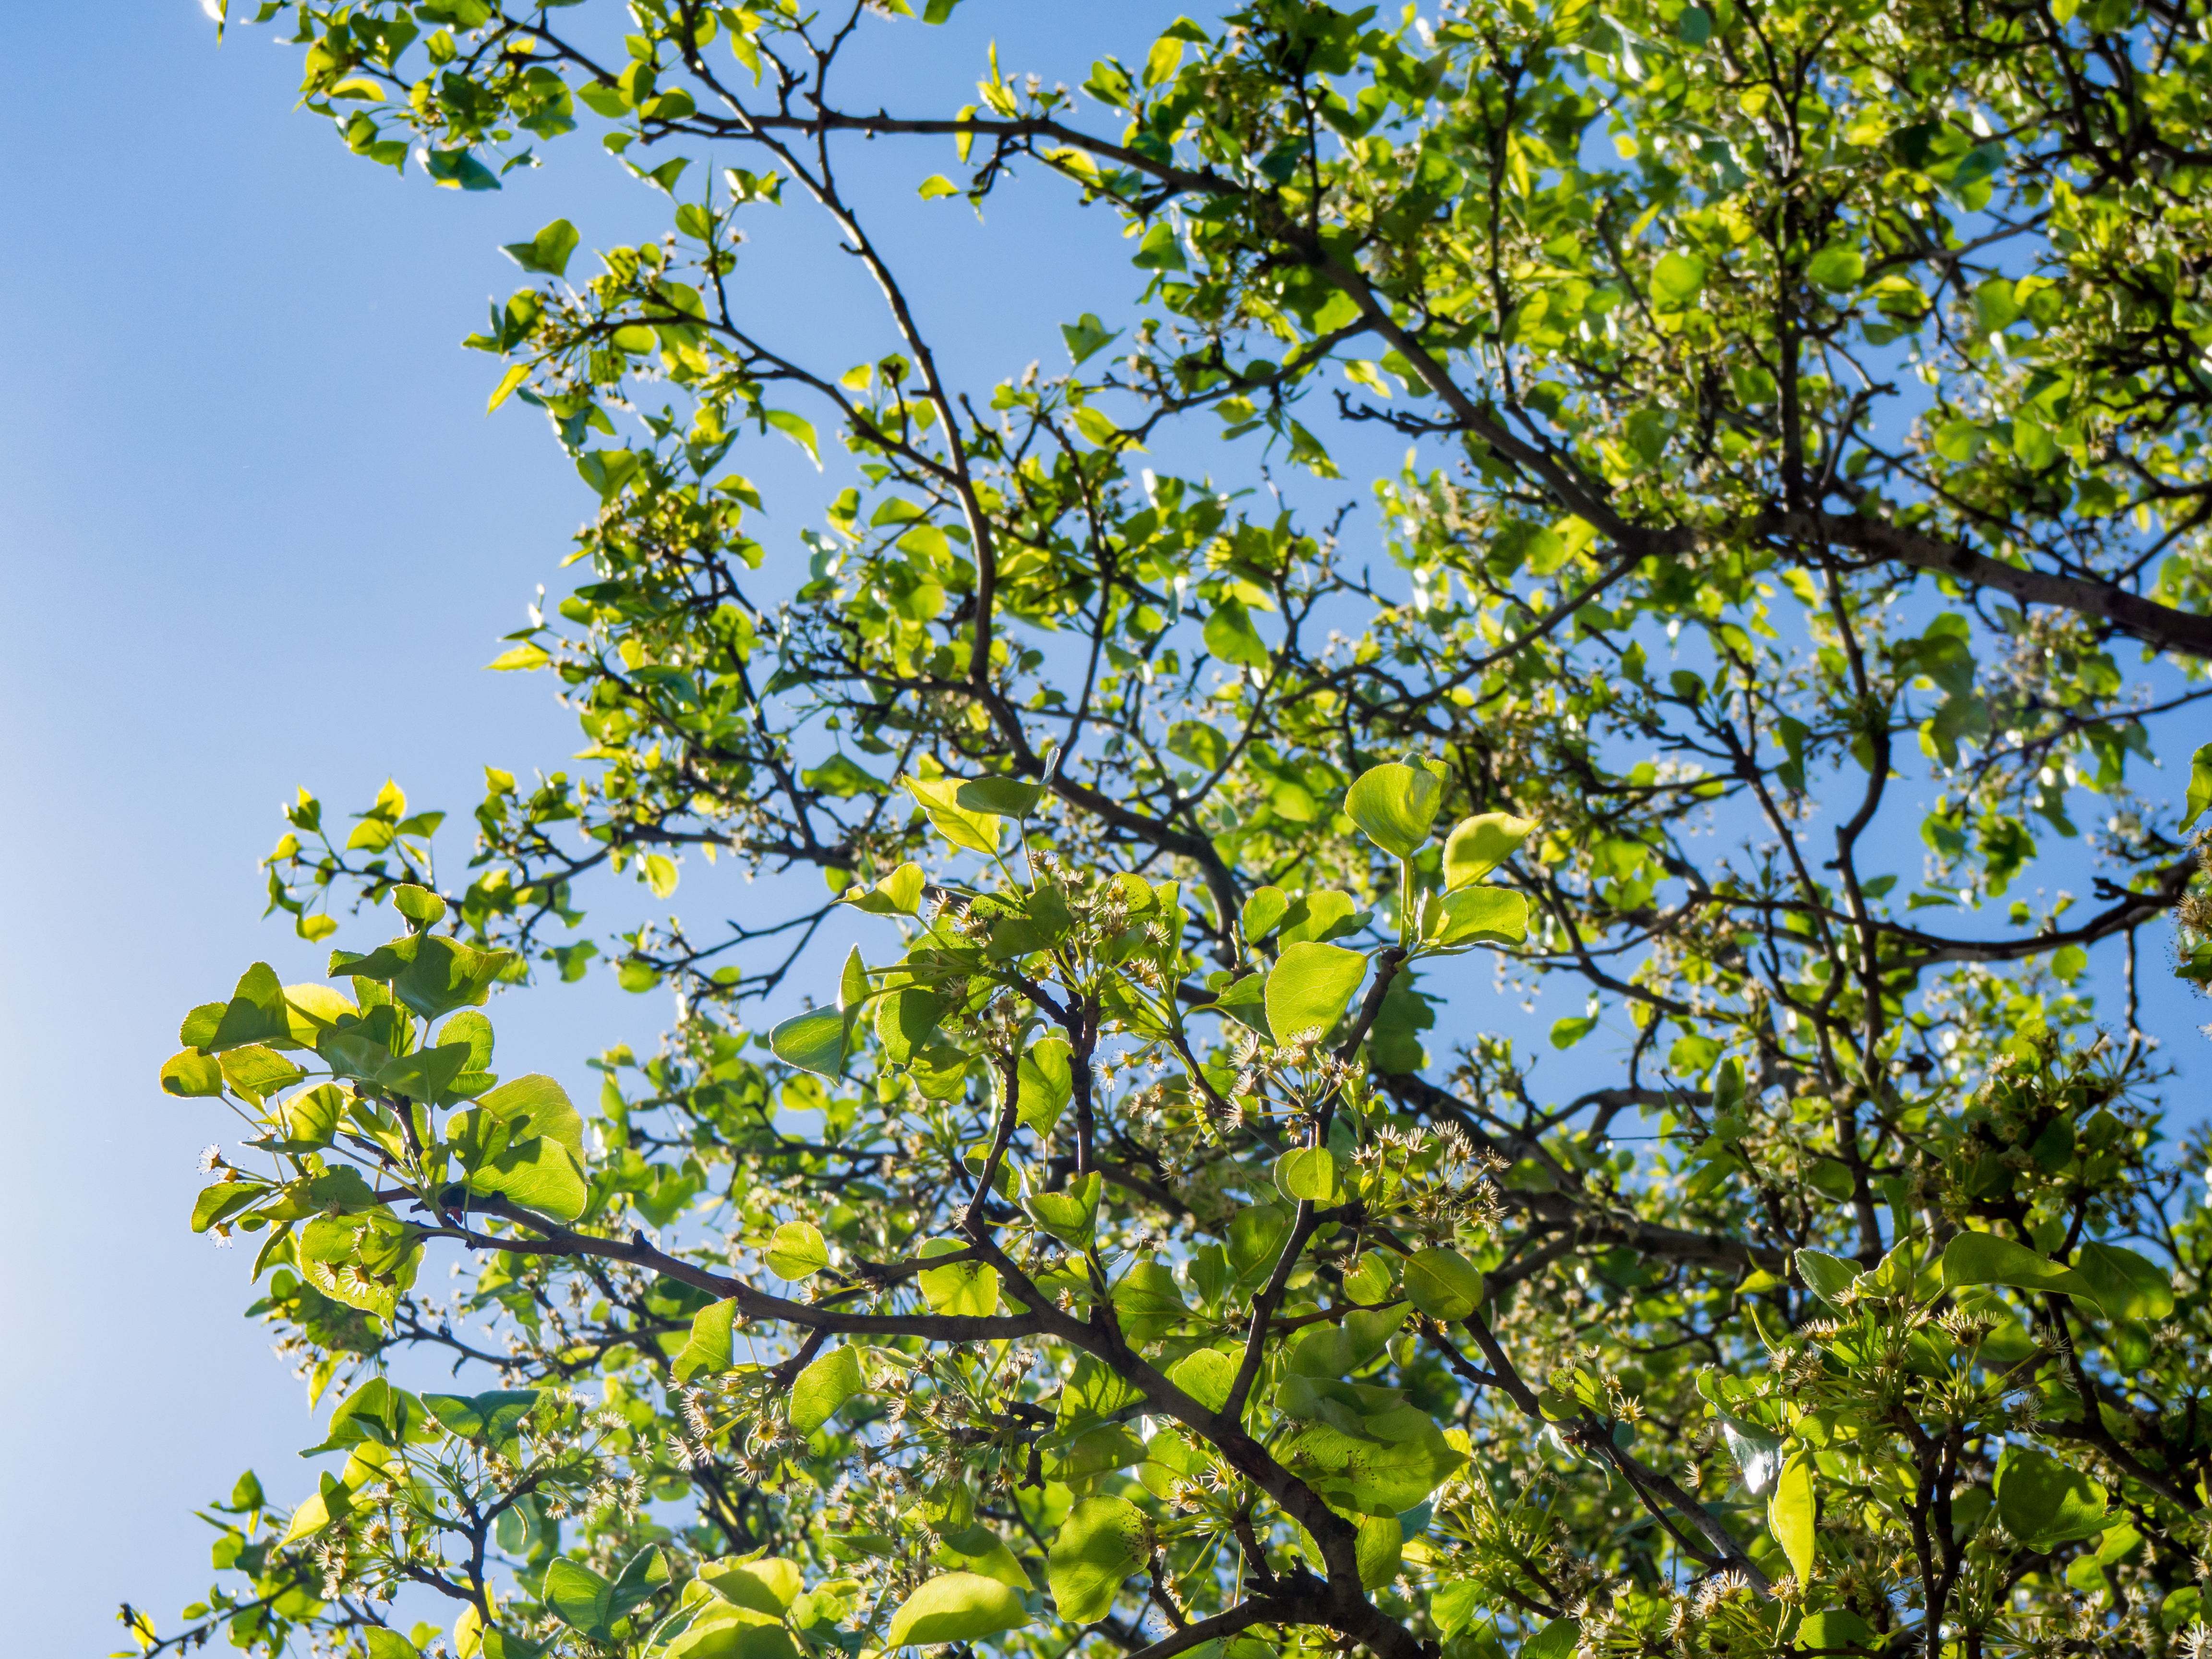 green leaves and branches u2013 mmt